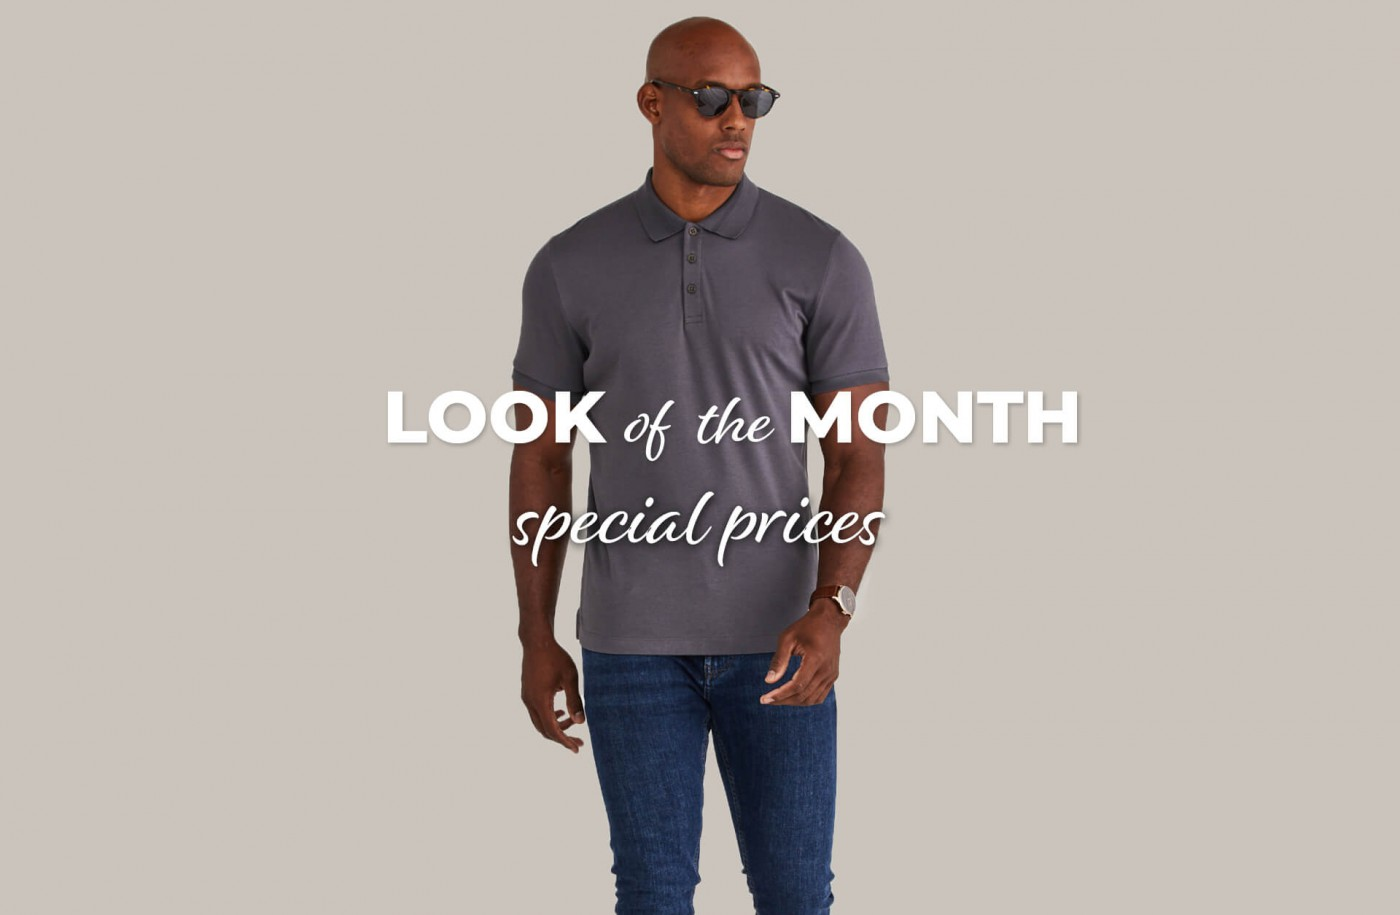 LOOK OF THE MONTH